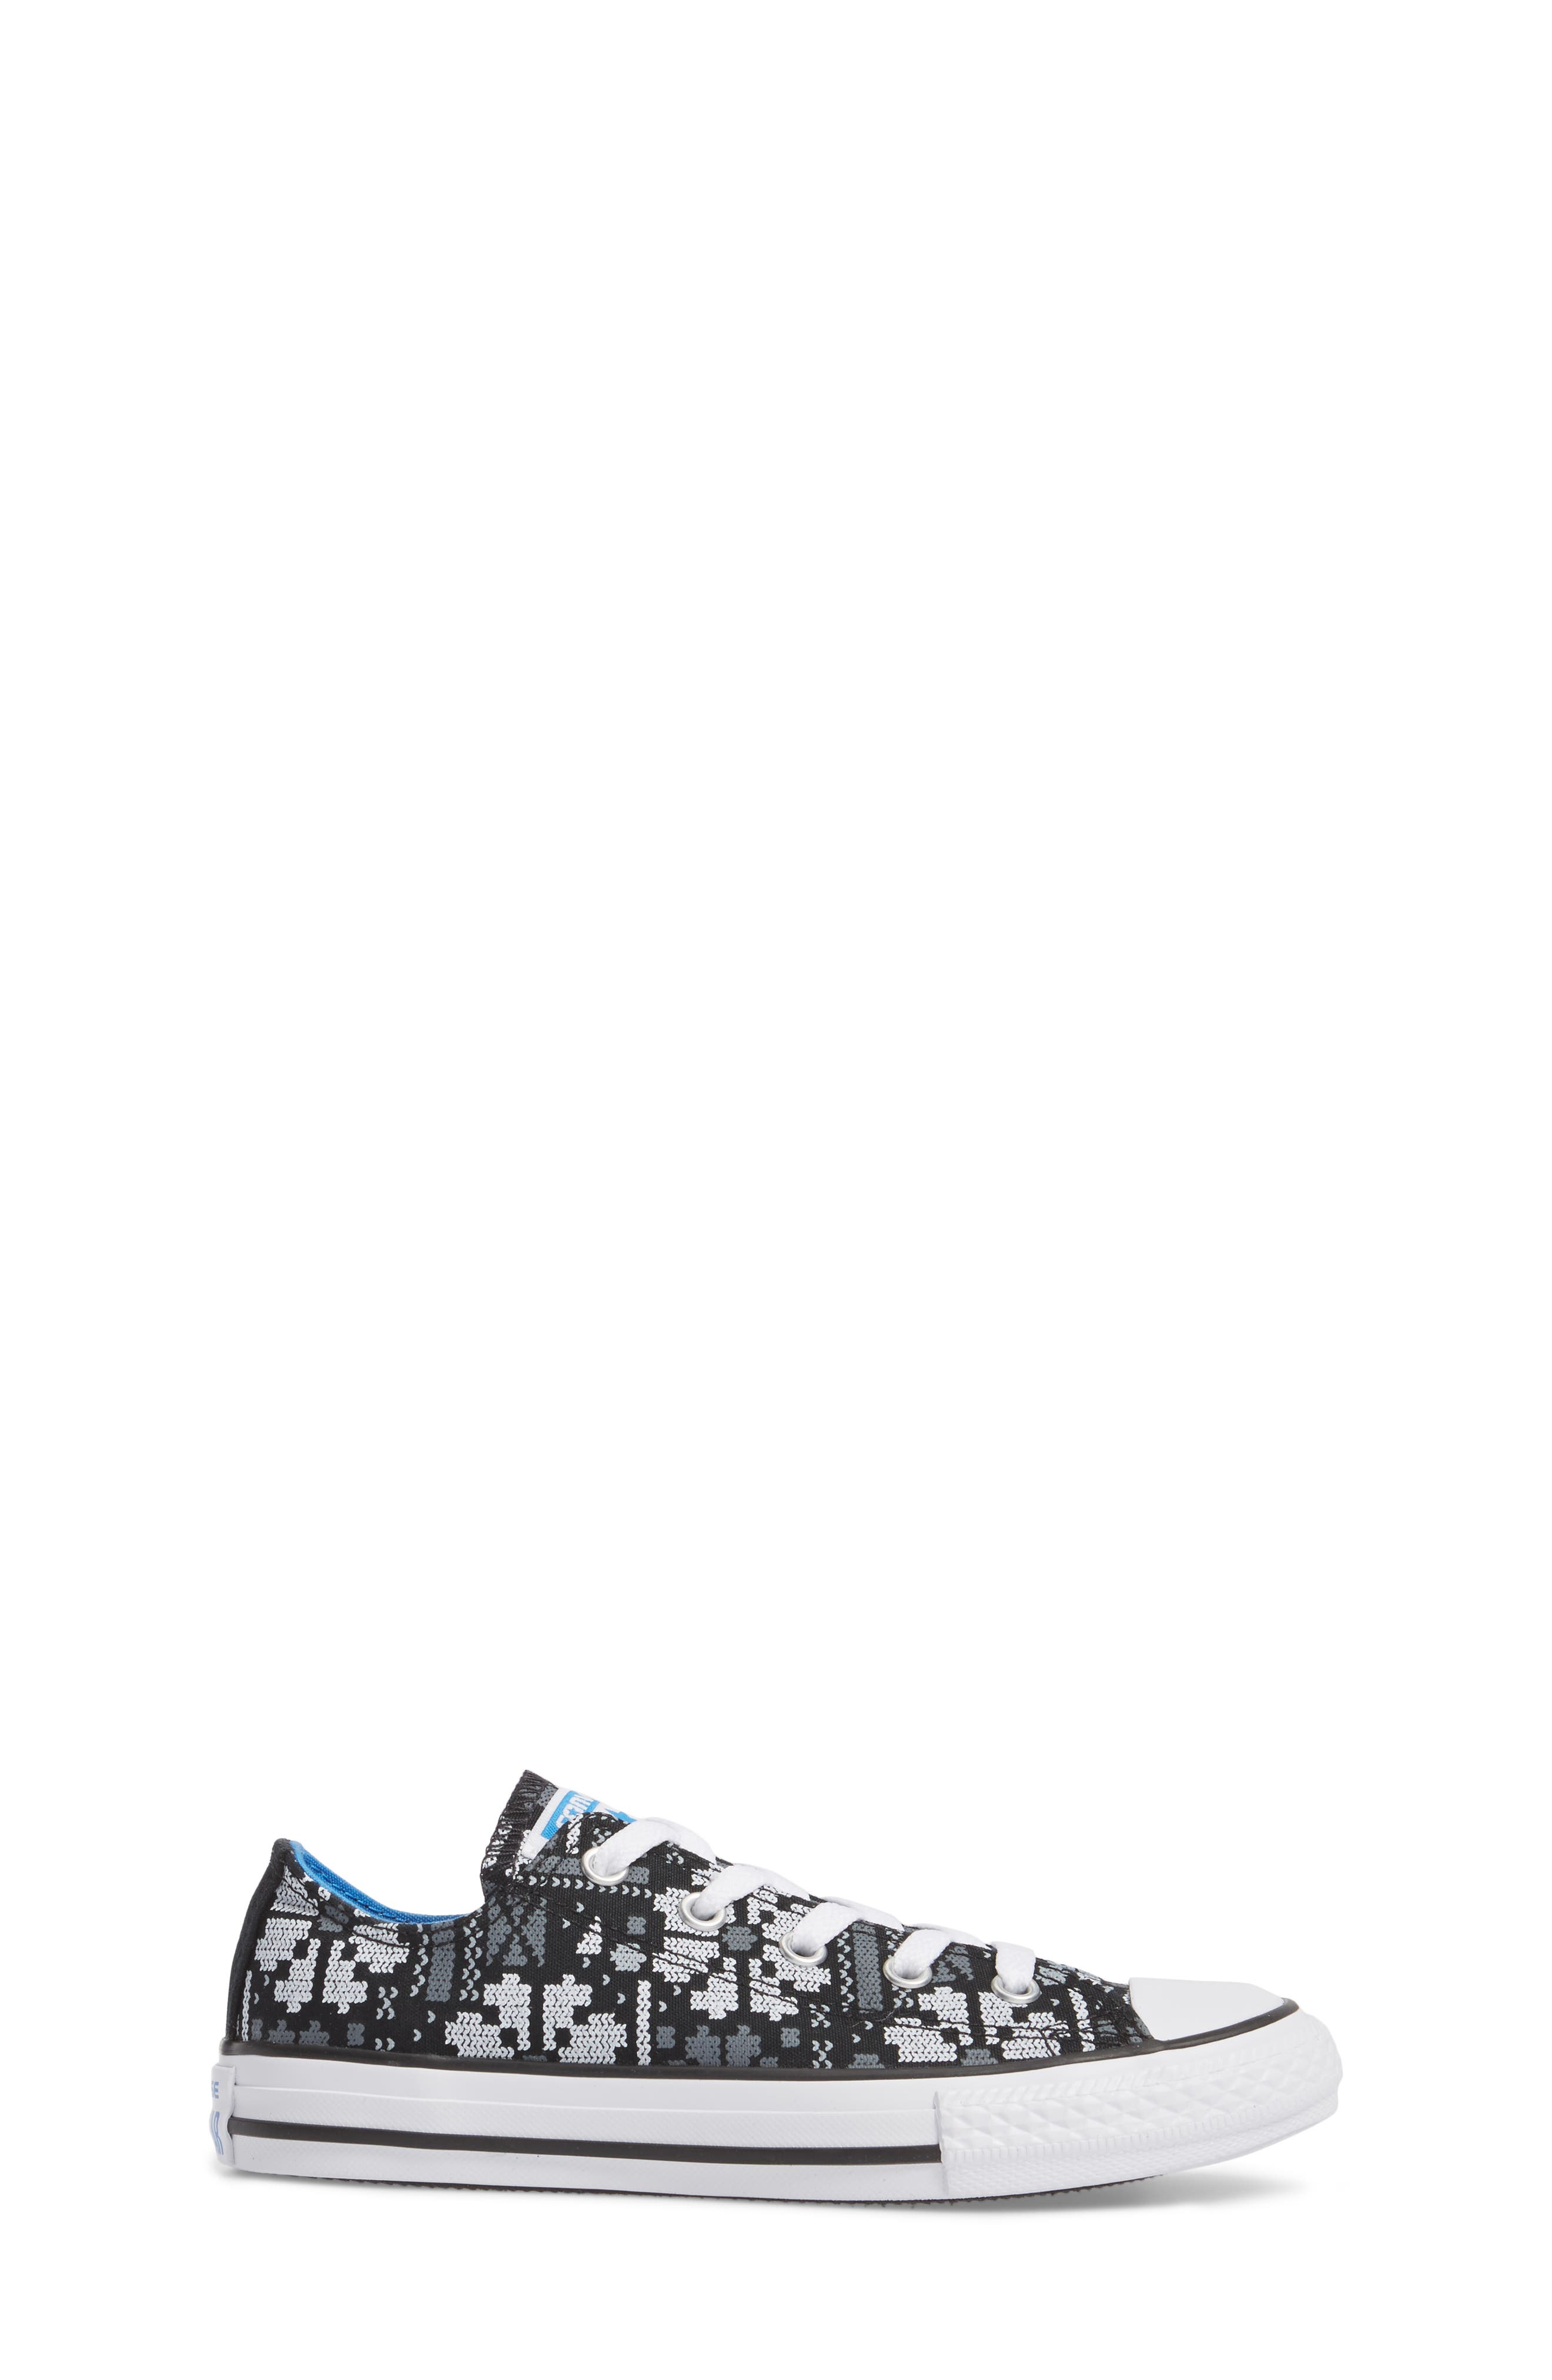 Chuck Taylor<sup>®</sup> All Star<sup>®</sup> Winter Ox Sneaker,                             Alternate thumbnail 3, color,